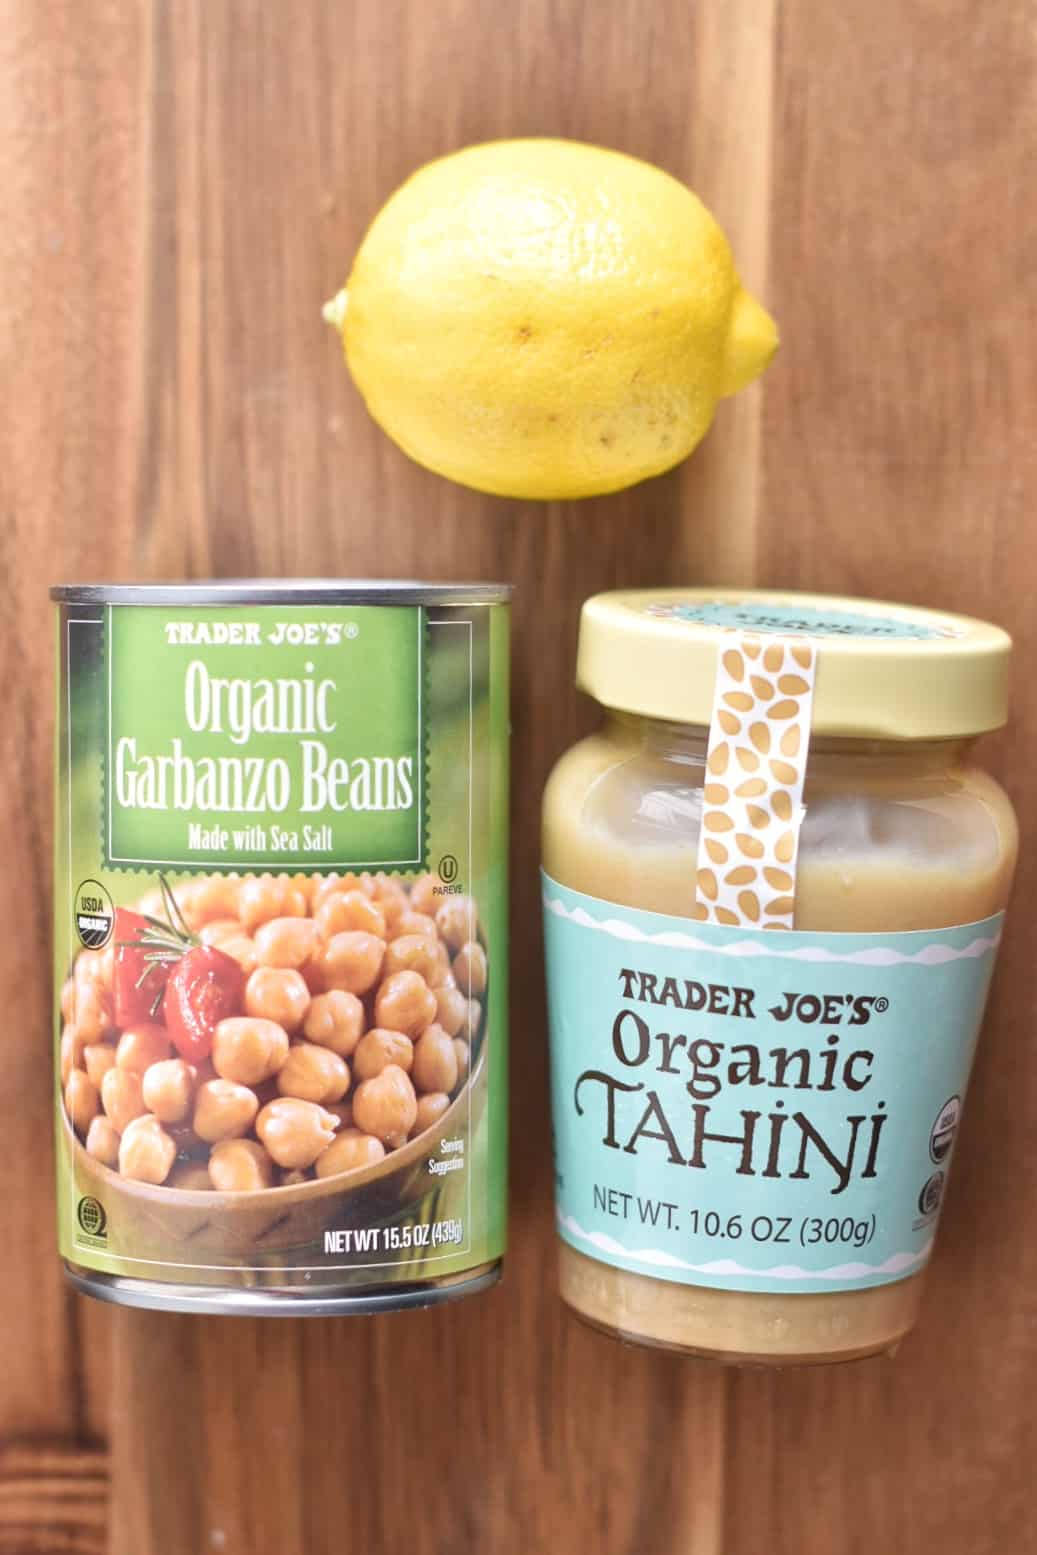 25+ Trader Joe's Healthy Snack Ideas #healthyeating #shoppinglist #favorites